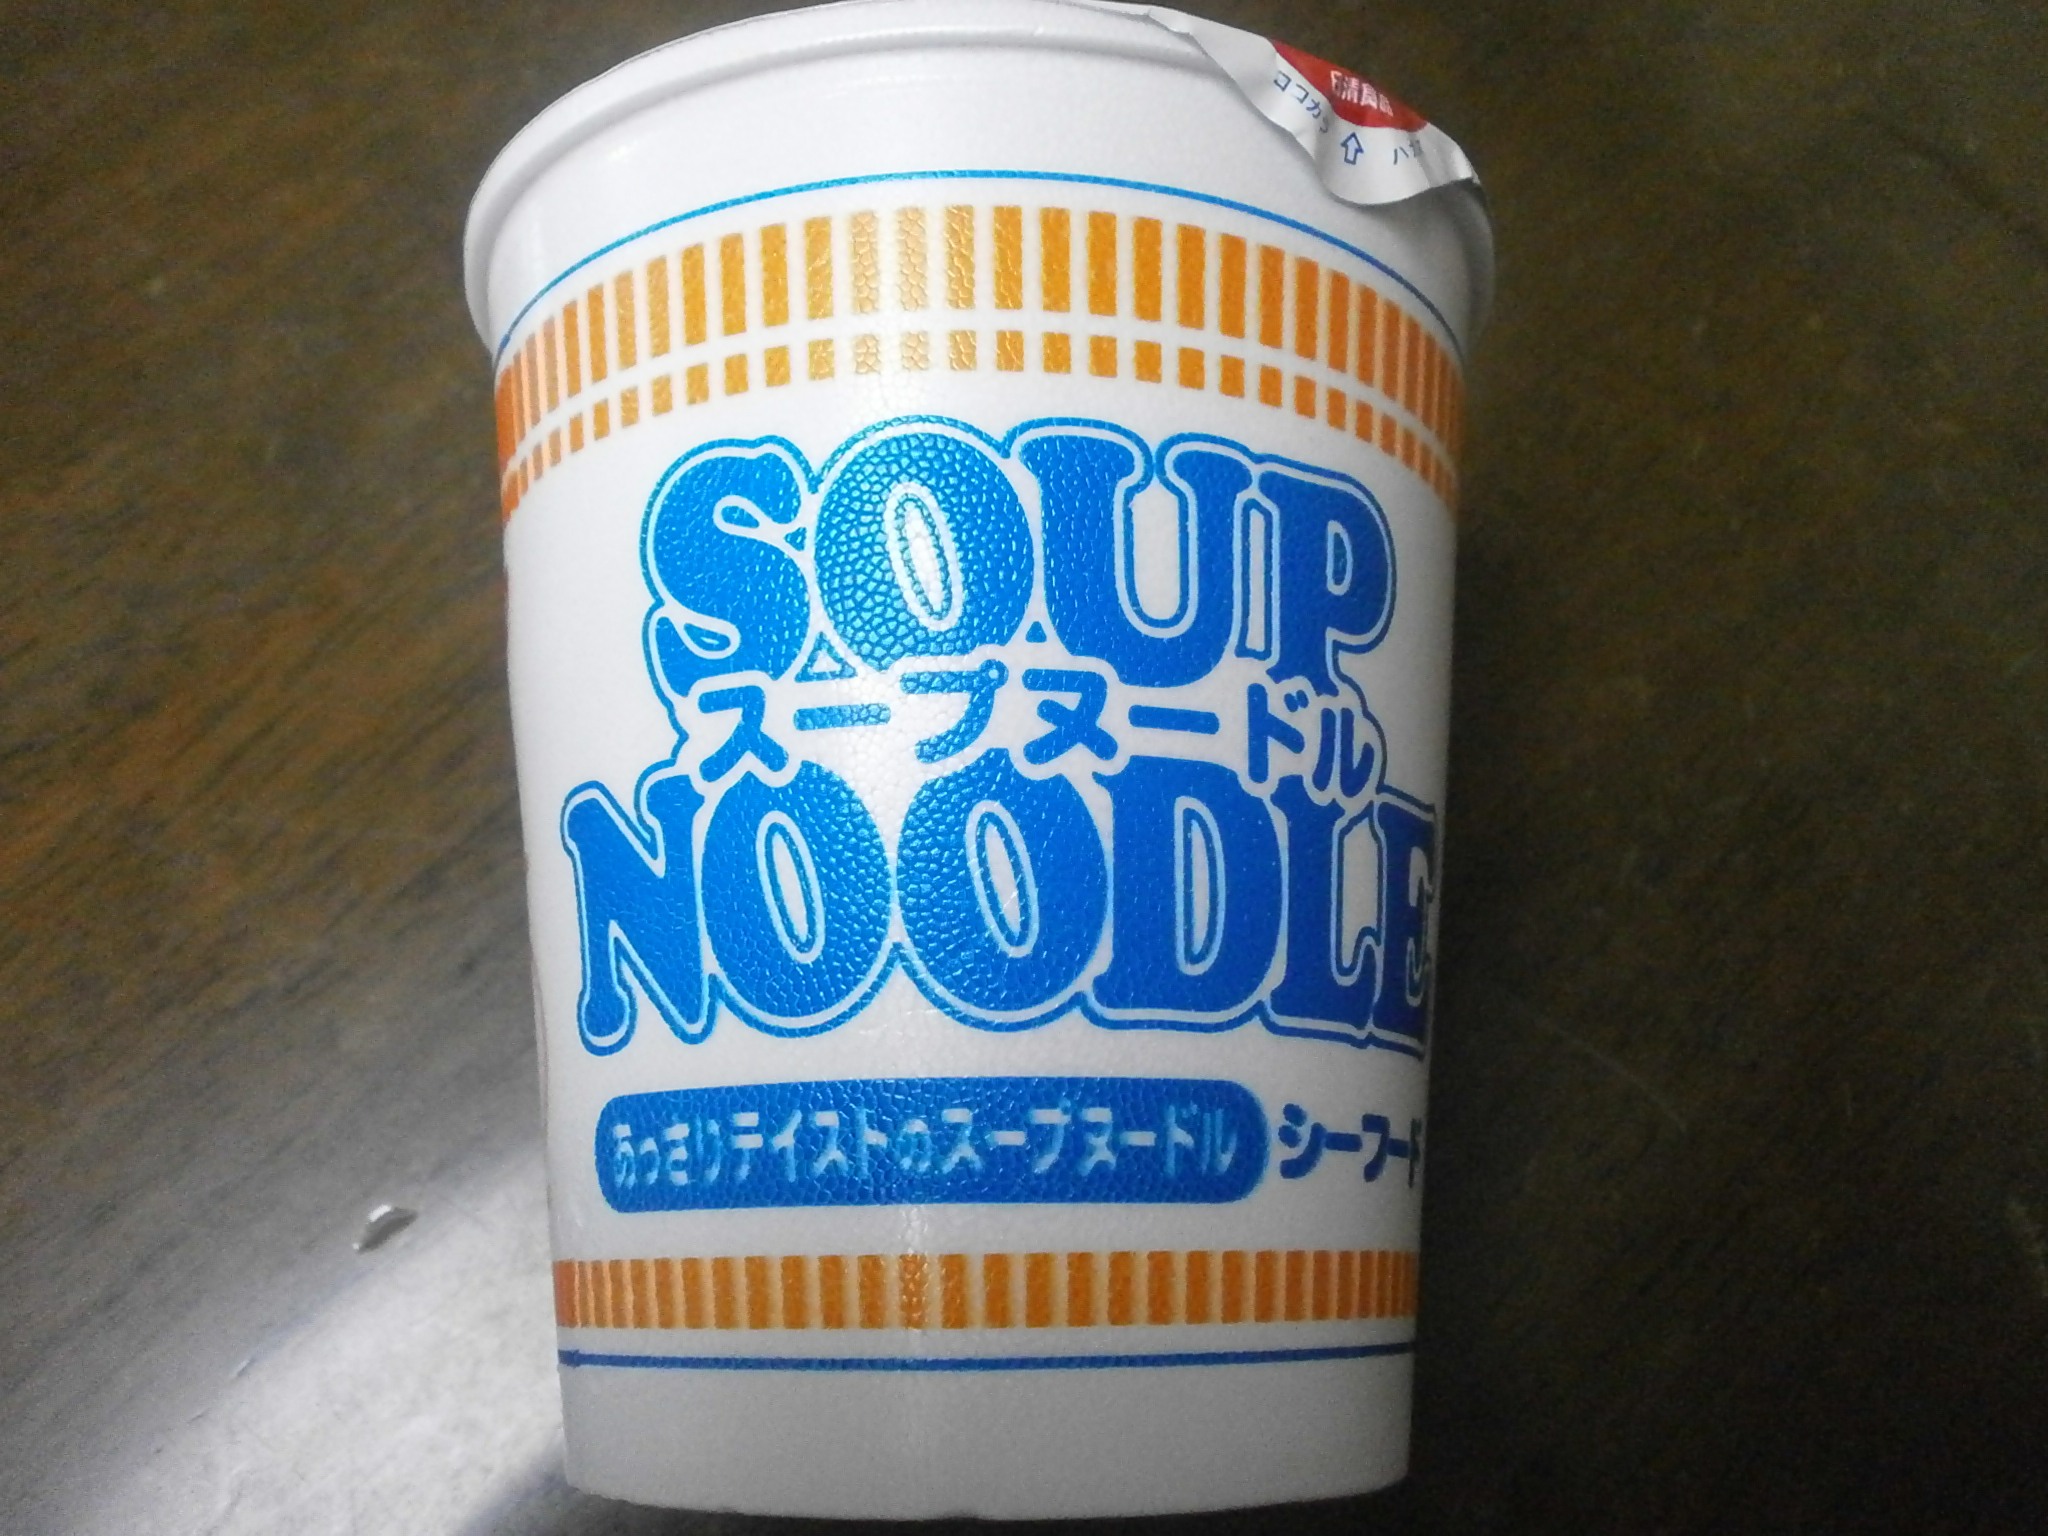 Which high-calorie? Noodle Soup (Curry)? Noodle soup (seafood)?